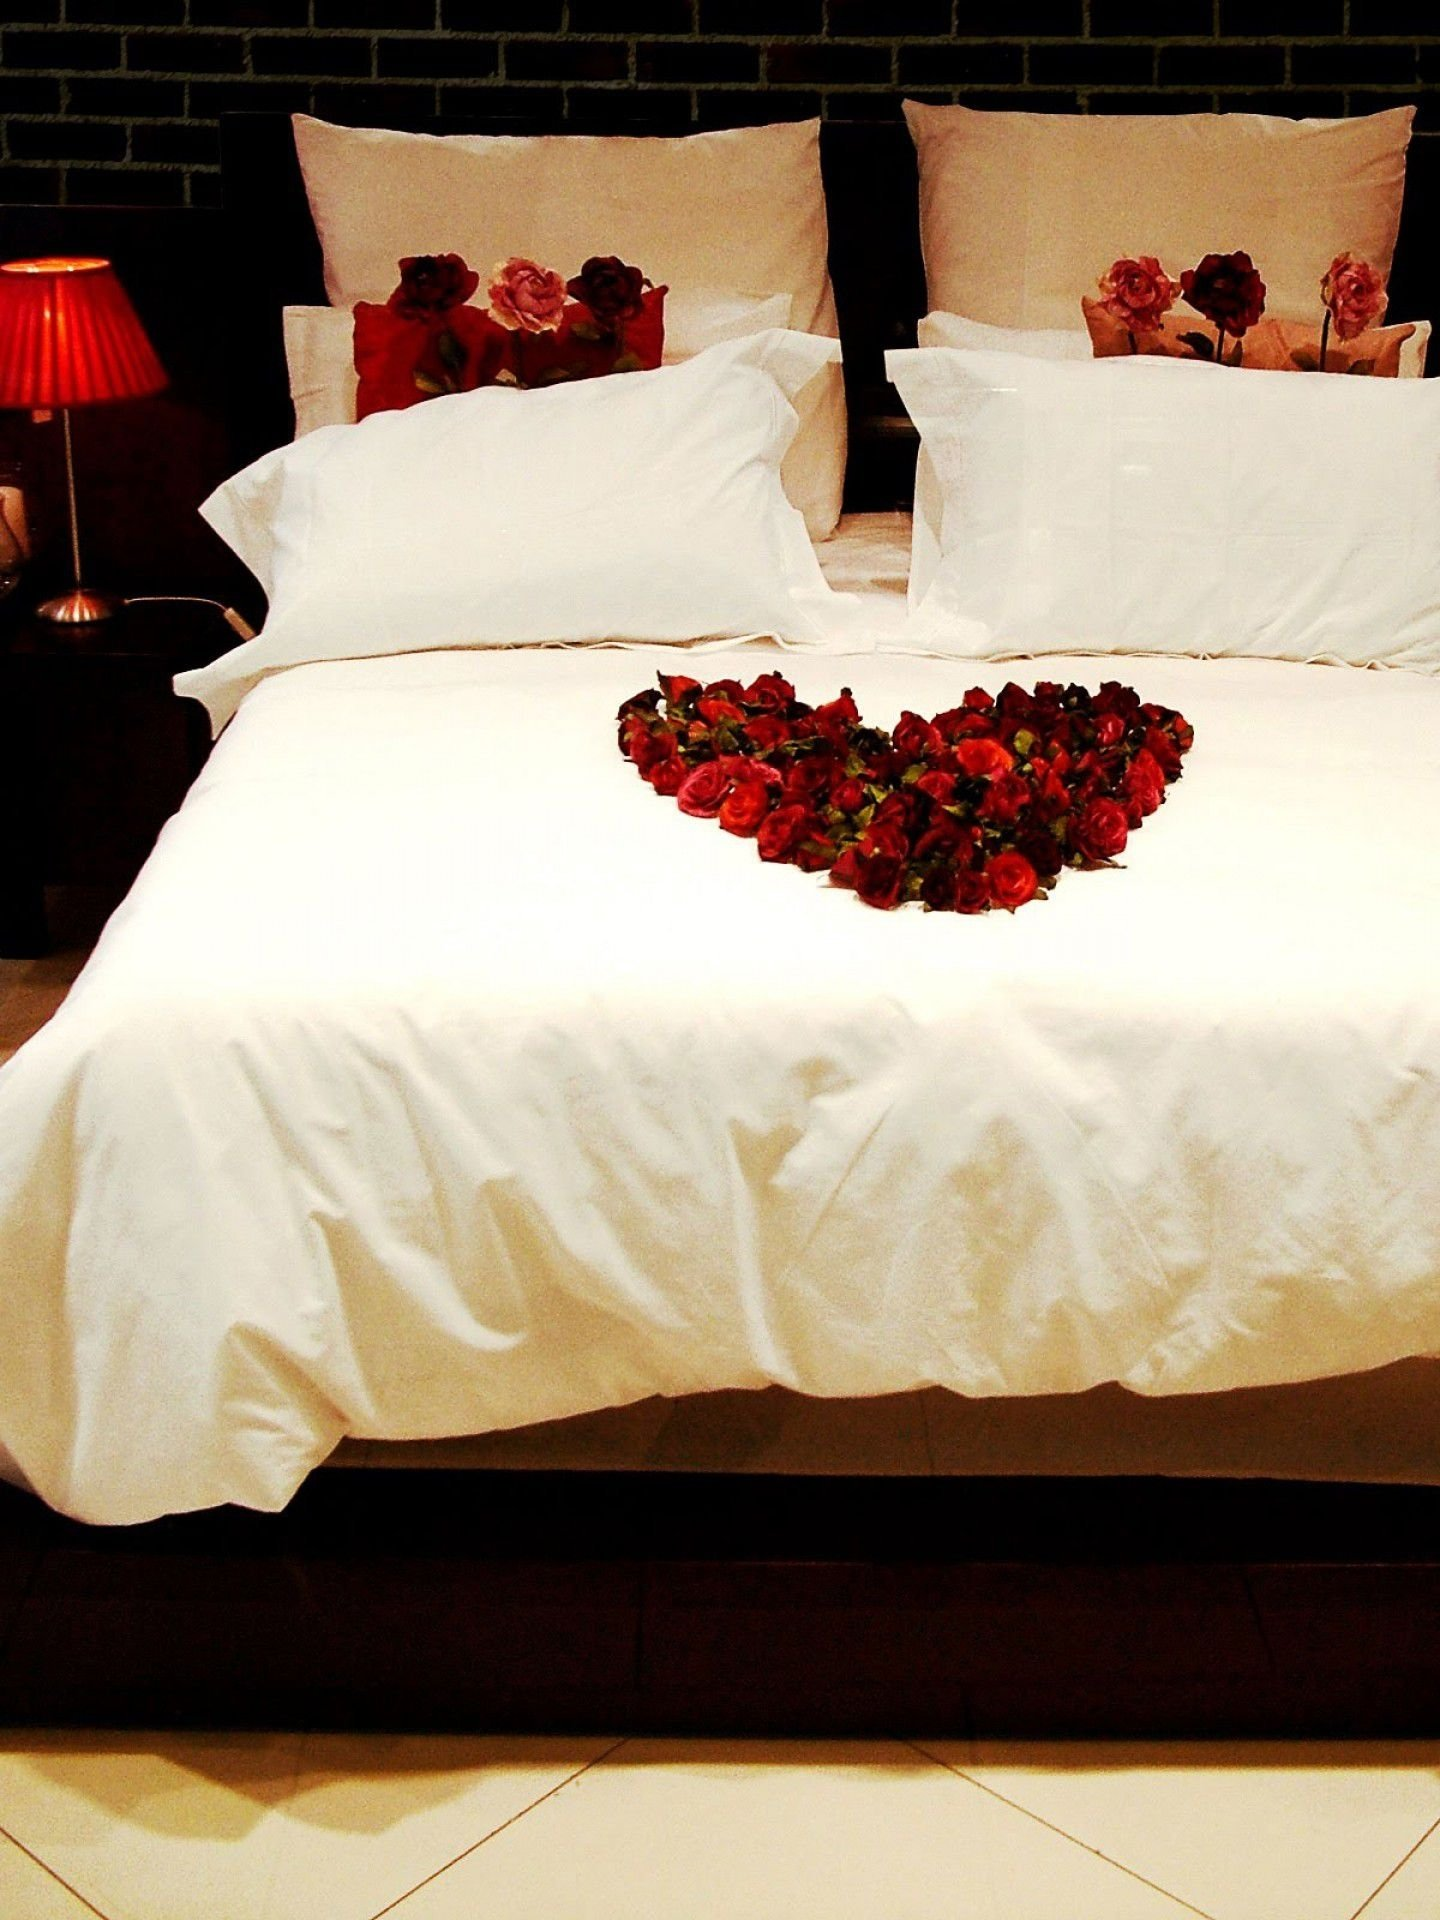 10 Most Popular Romantic Ideas For Him In A Hotel fascinating romantic bedroom ideas for him decorate hotel room 2020